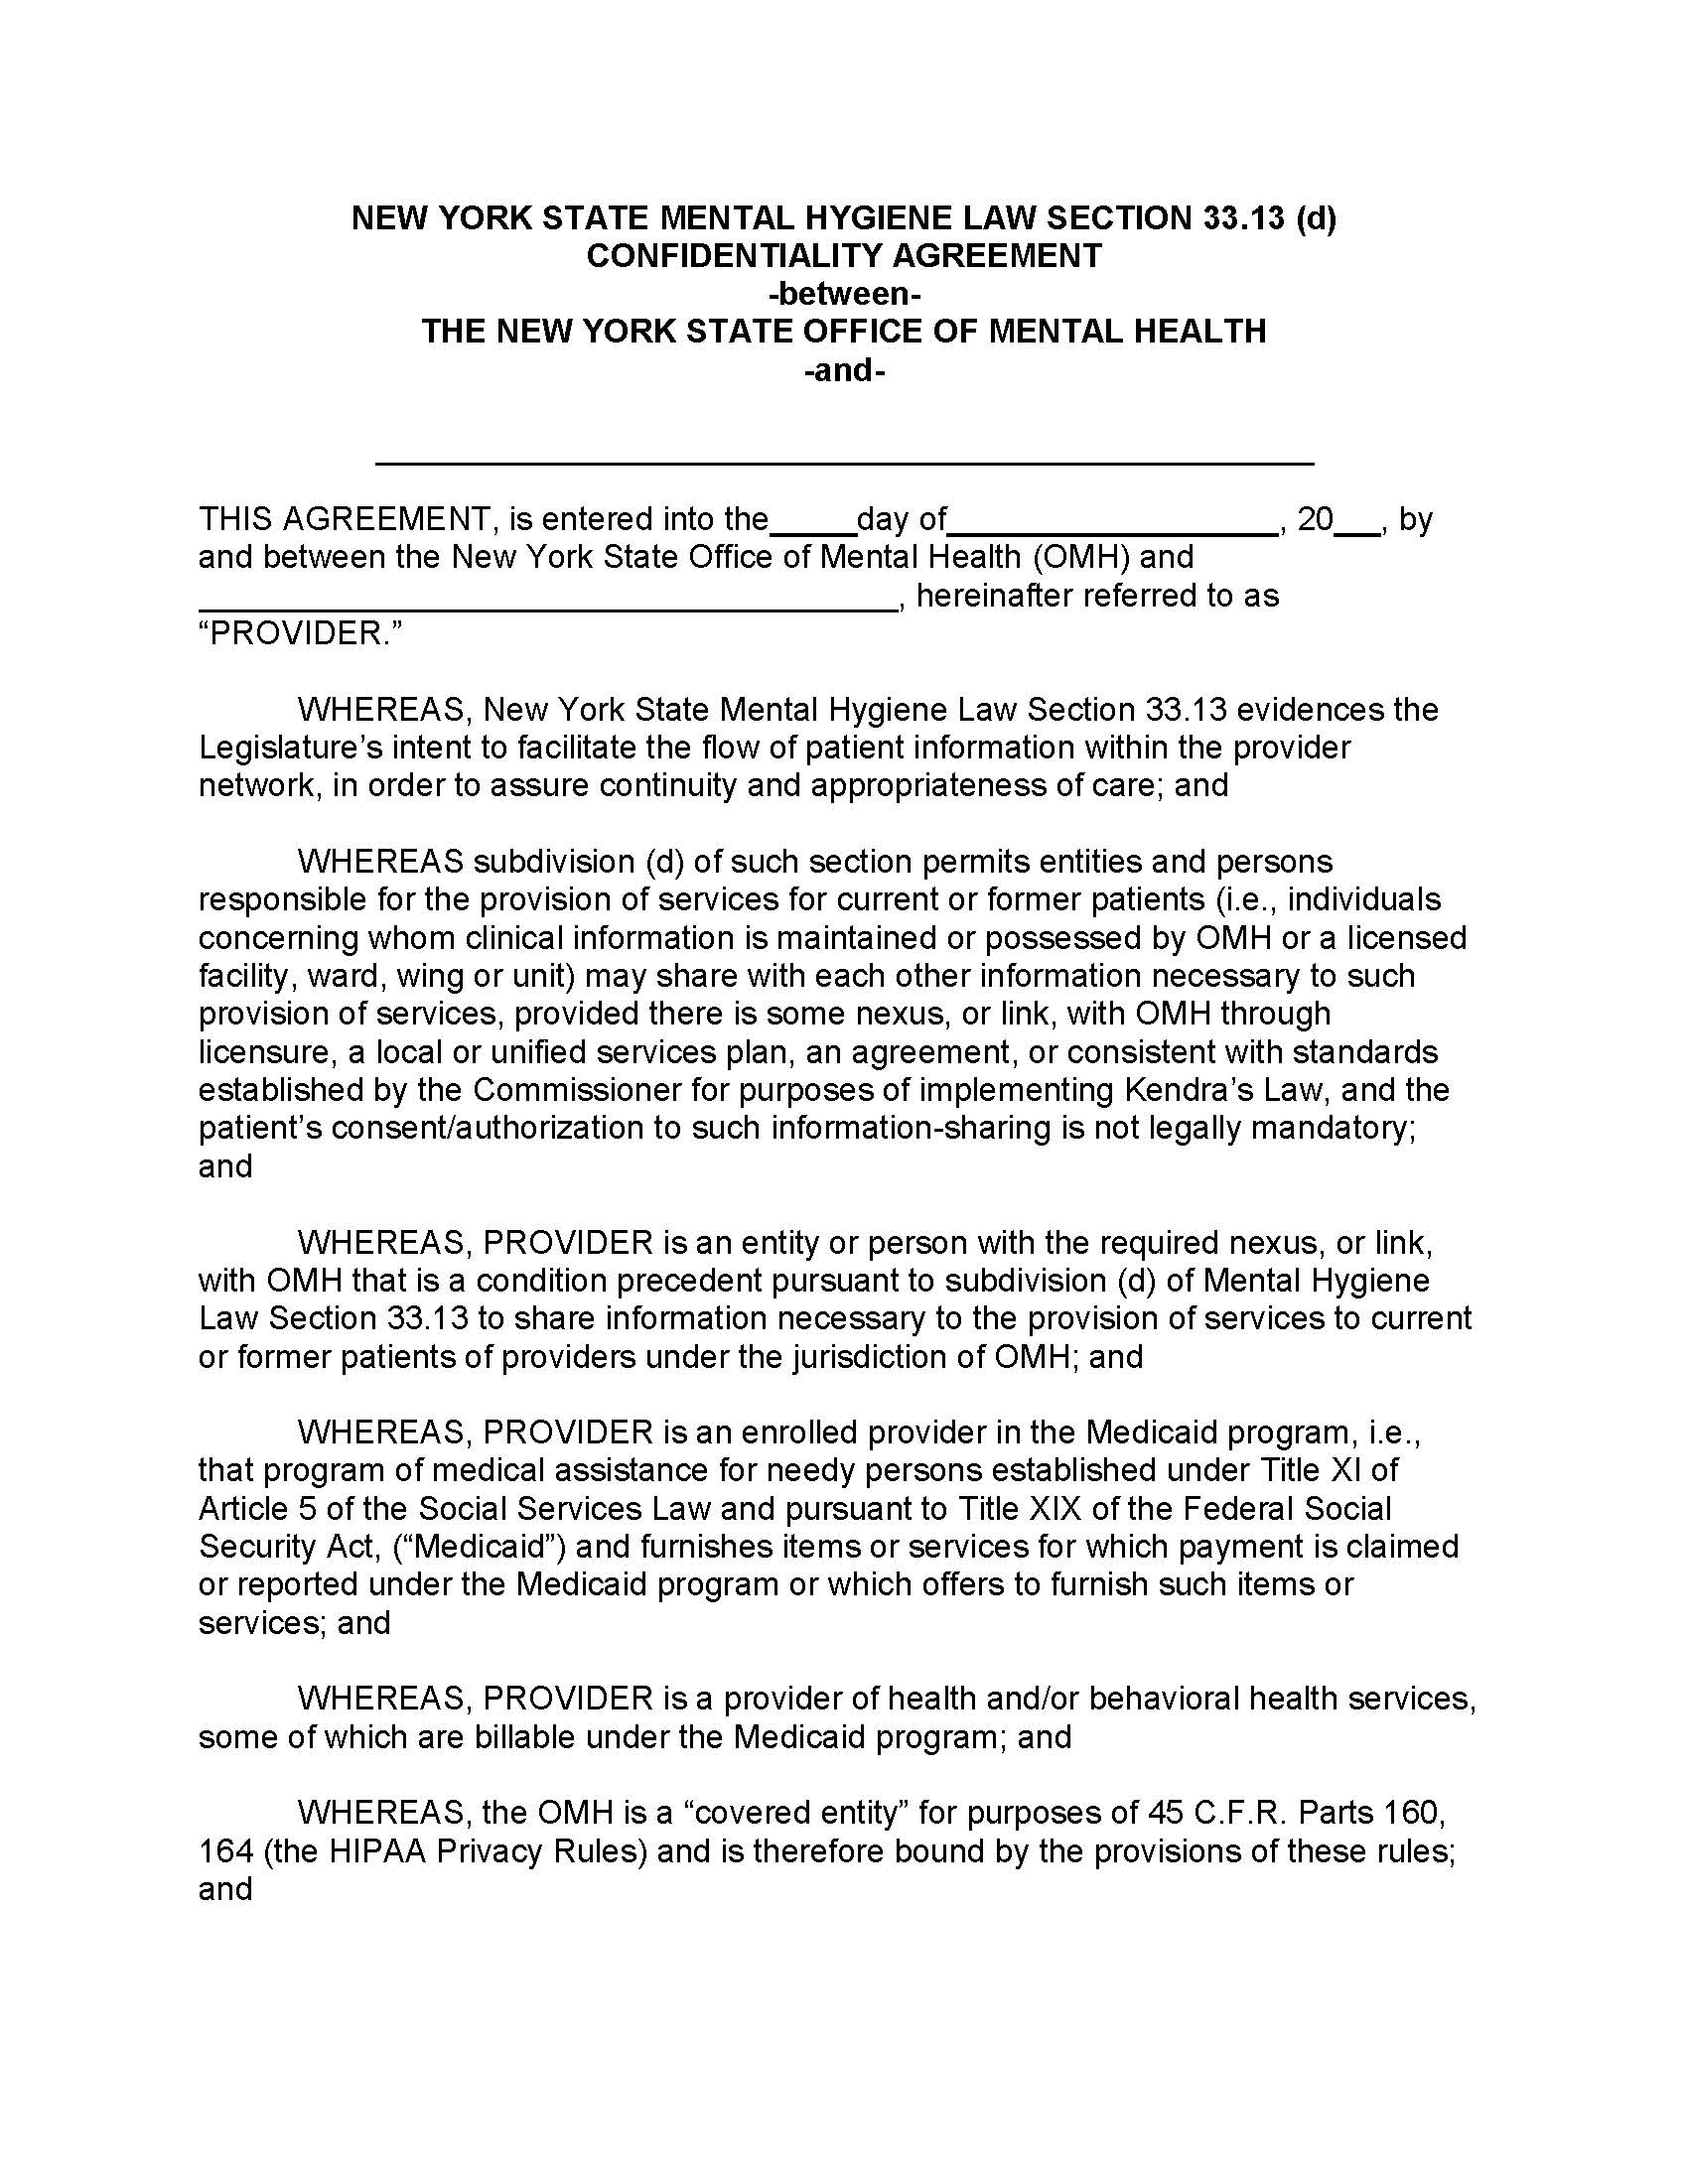 New York State Mental Hygiene Law Section 33 13 D Confidentiality